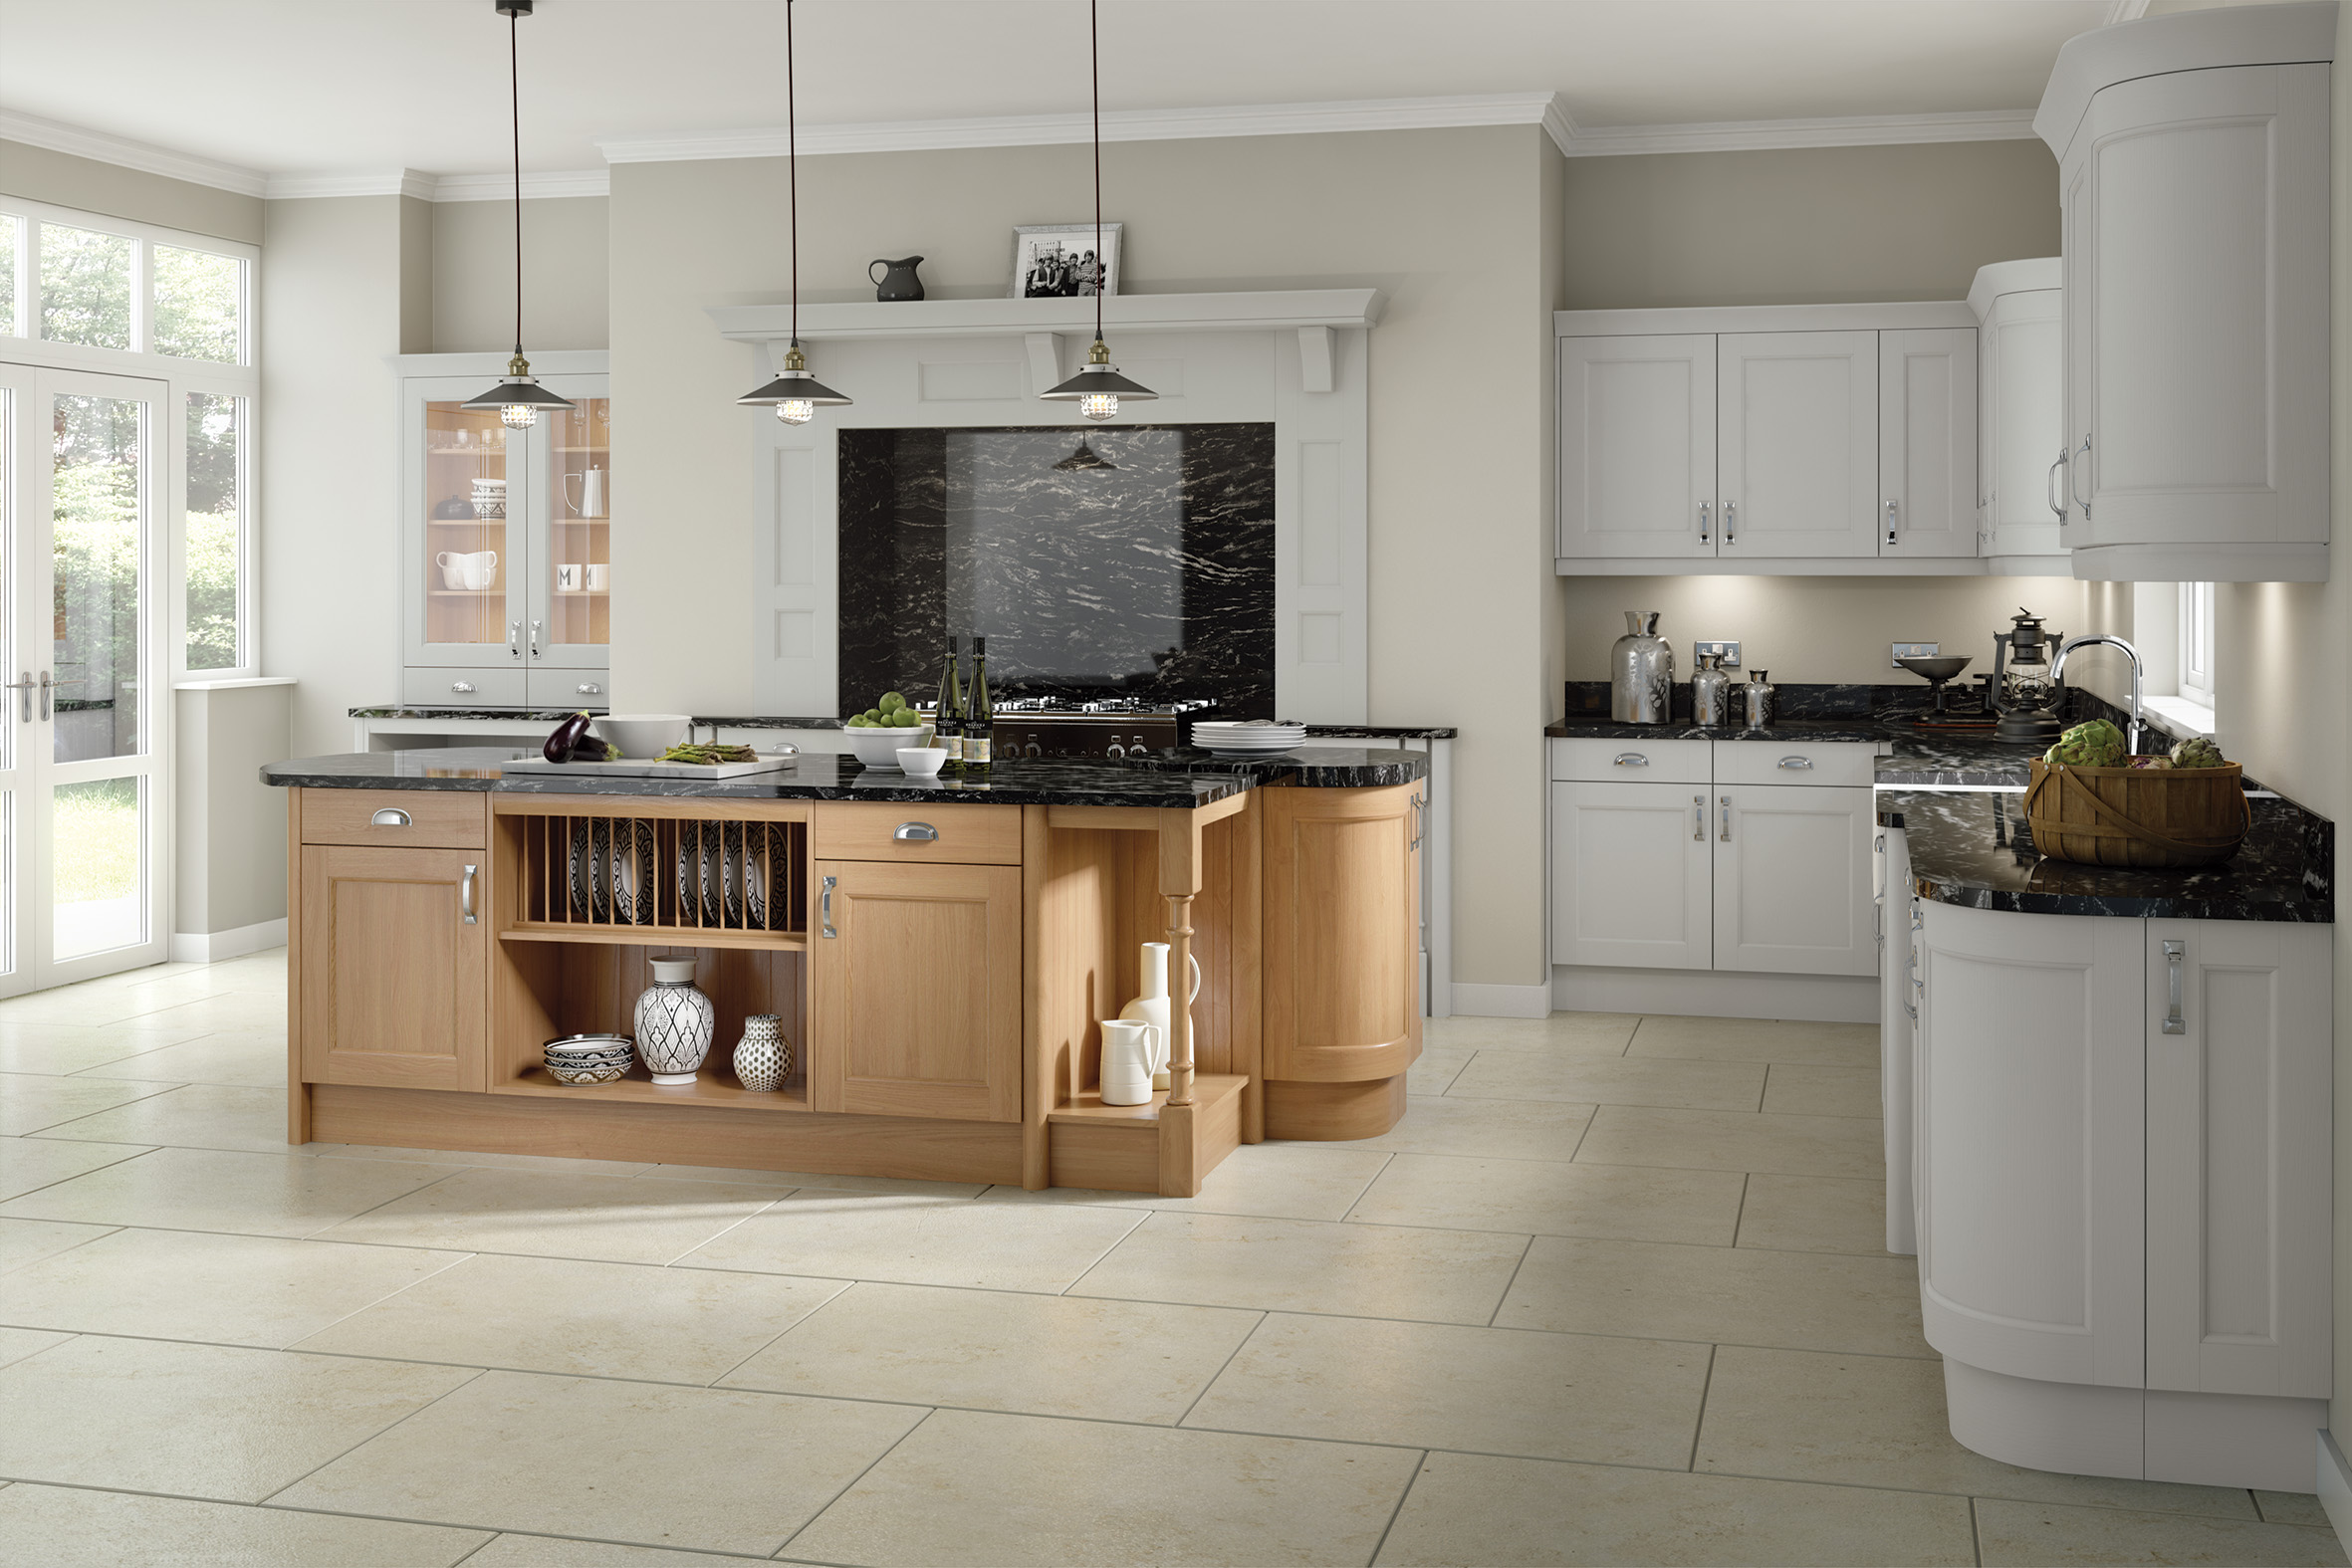 Windsor Light Grey Kitchen Doors Doors And Handles UK - Light grey kitchen doors